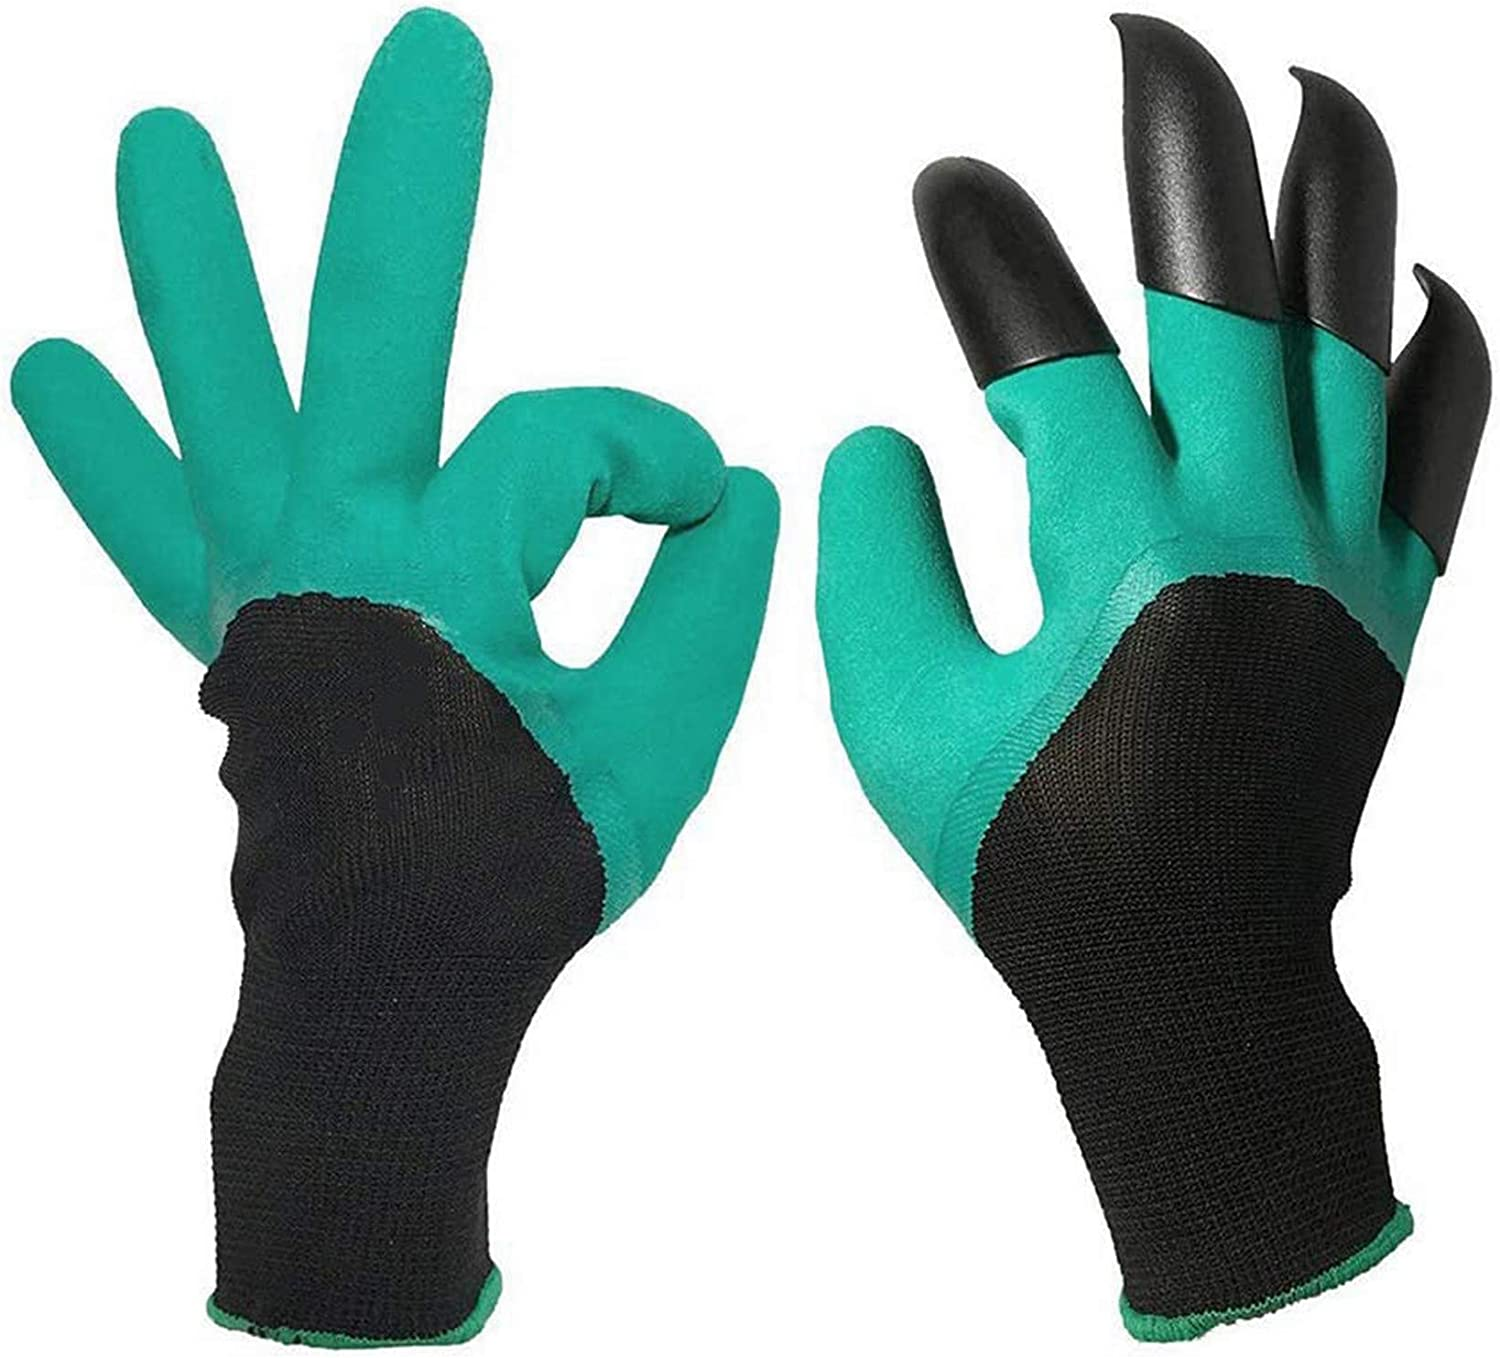 Gardening Genie Gloves, Waterproof and Breathable Rubber Coated Garden Gloves with Claw for Digging Weeding Planting